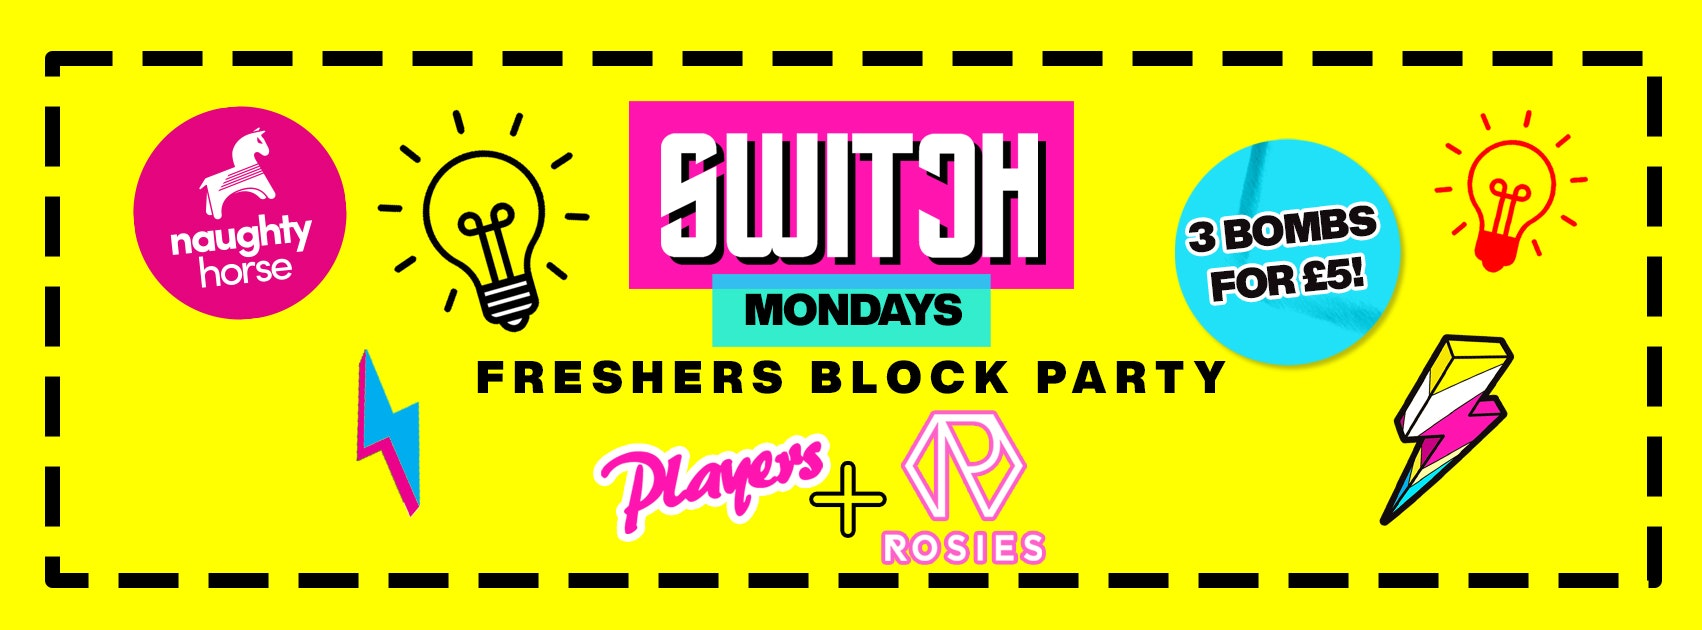 FRESHERS BLOCK PARTY – Rosies AND Players! Birmingham Freshers 2021!